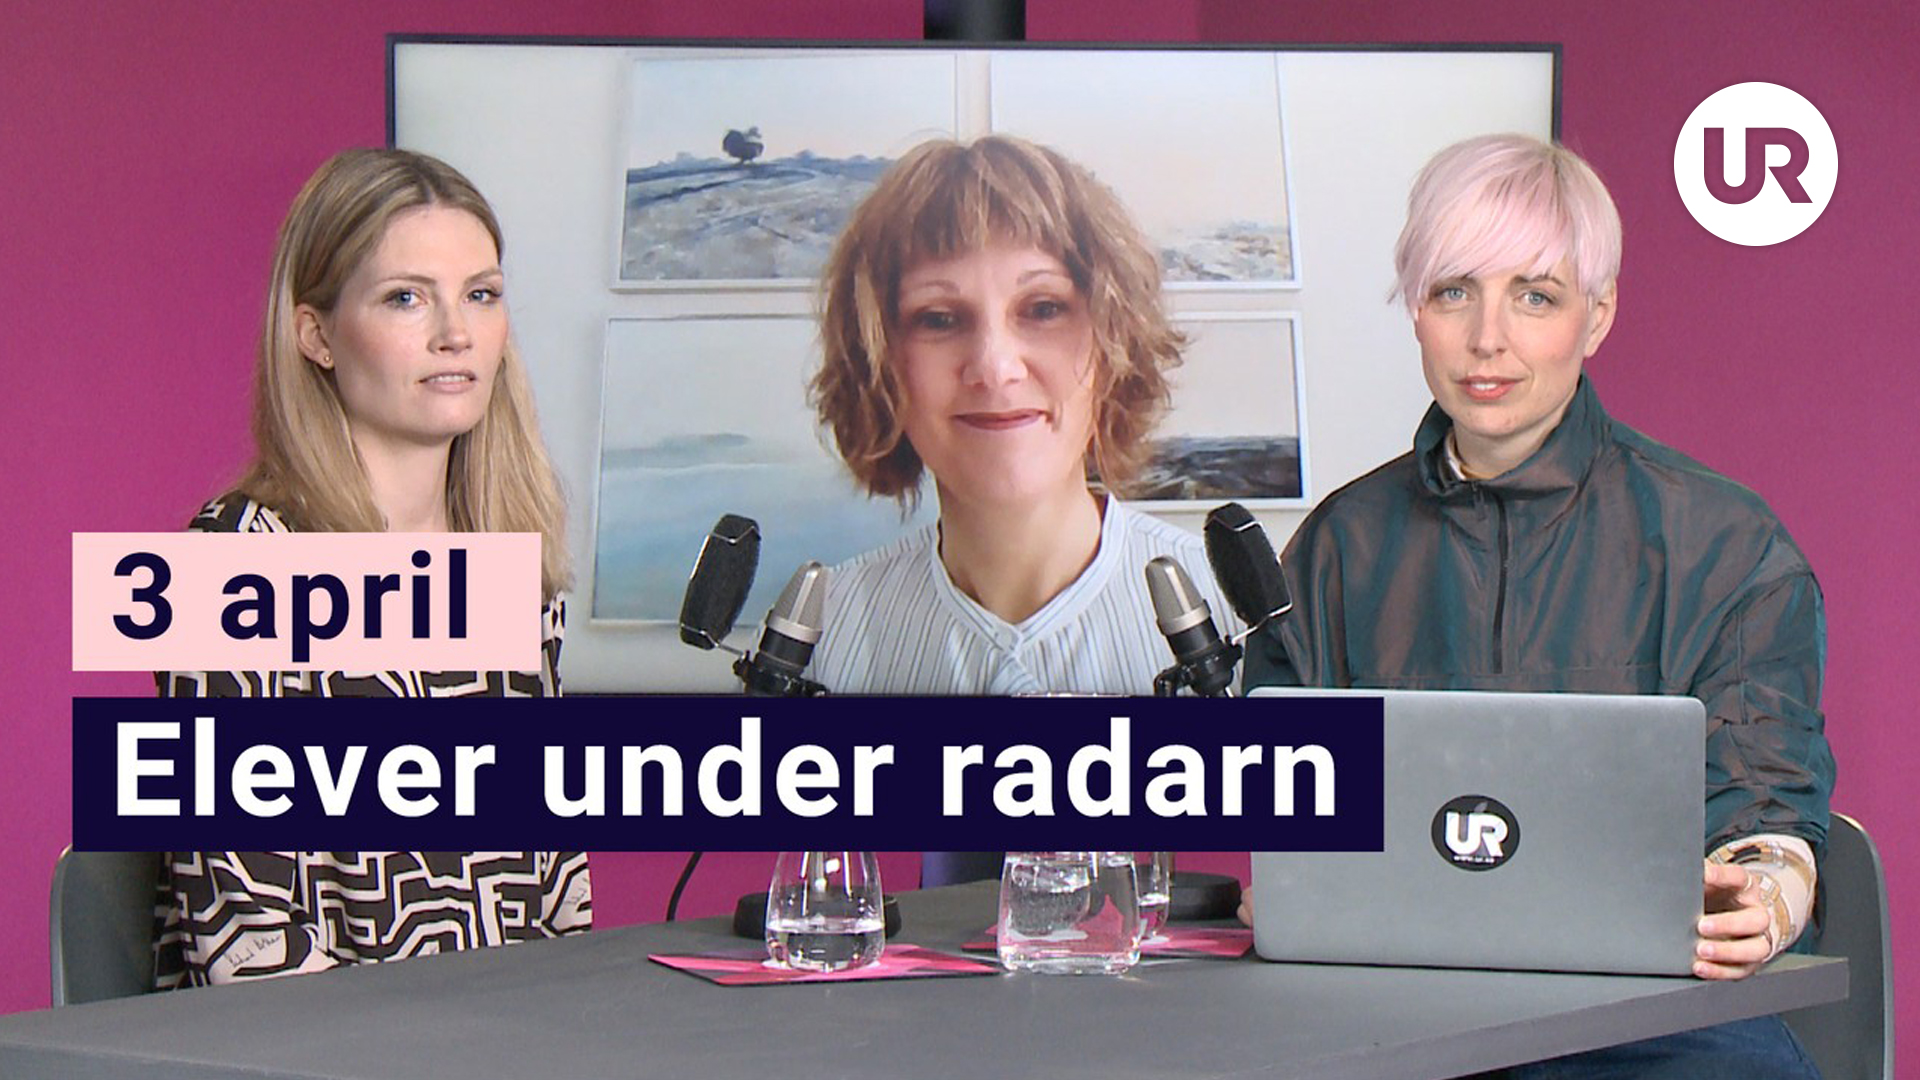 Skola Hemma, 3 april - Elever under radarn